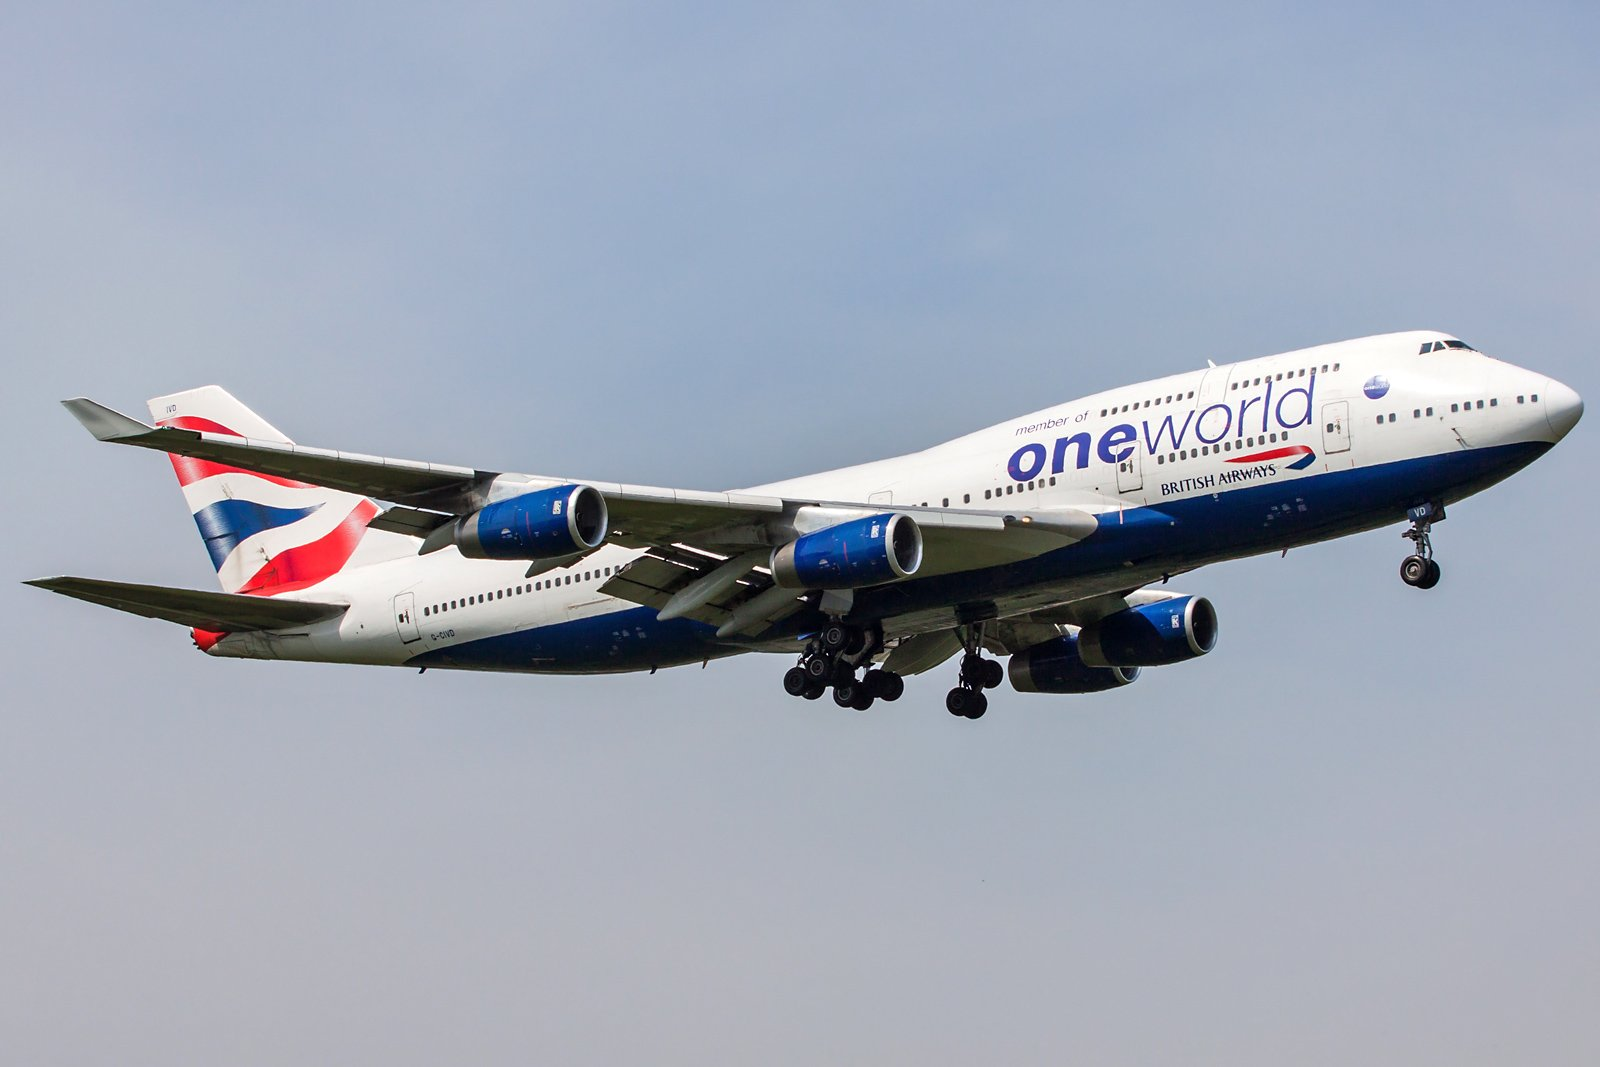 British Airways Boeing 747-436 G-CIVD